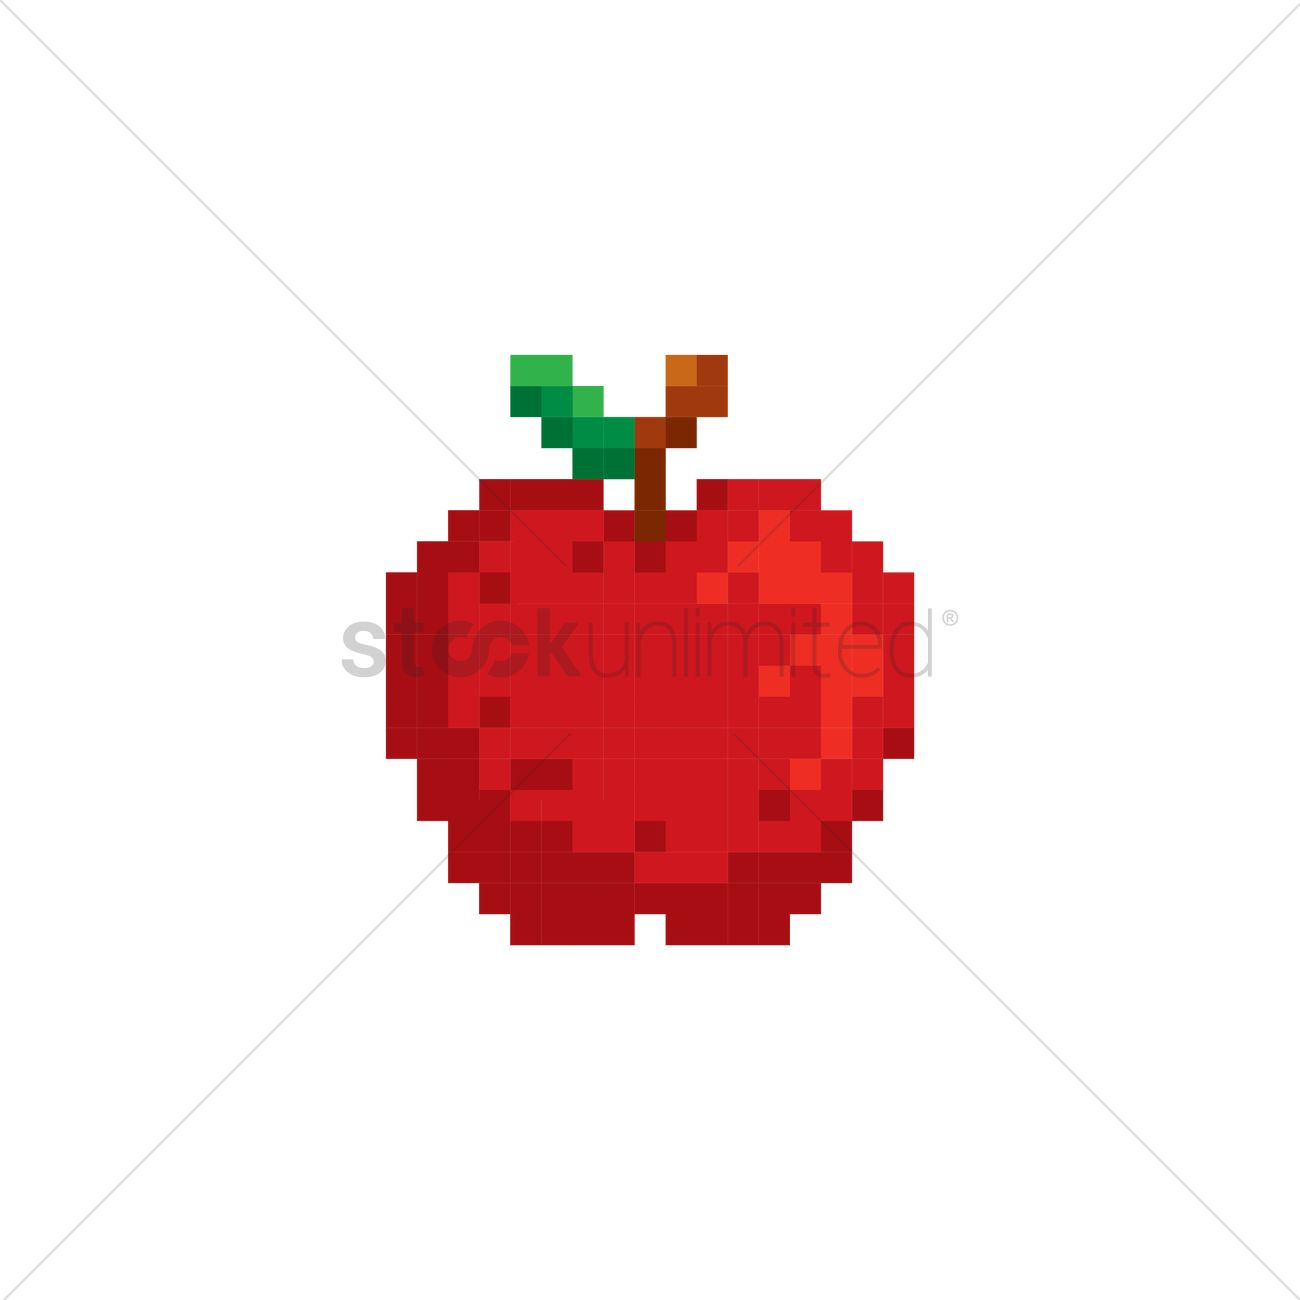 Pixel Art Red Apple Vector Image - 1987401